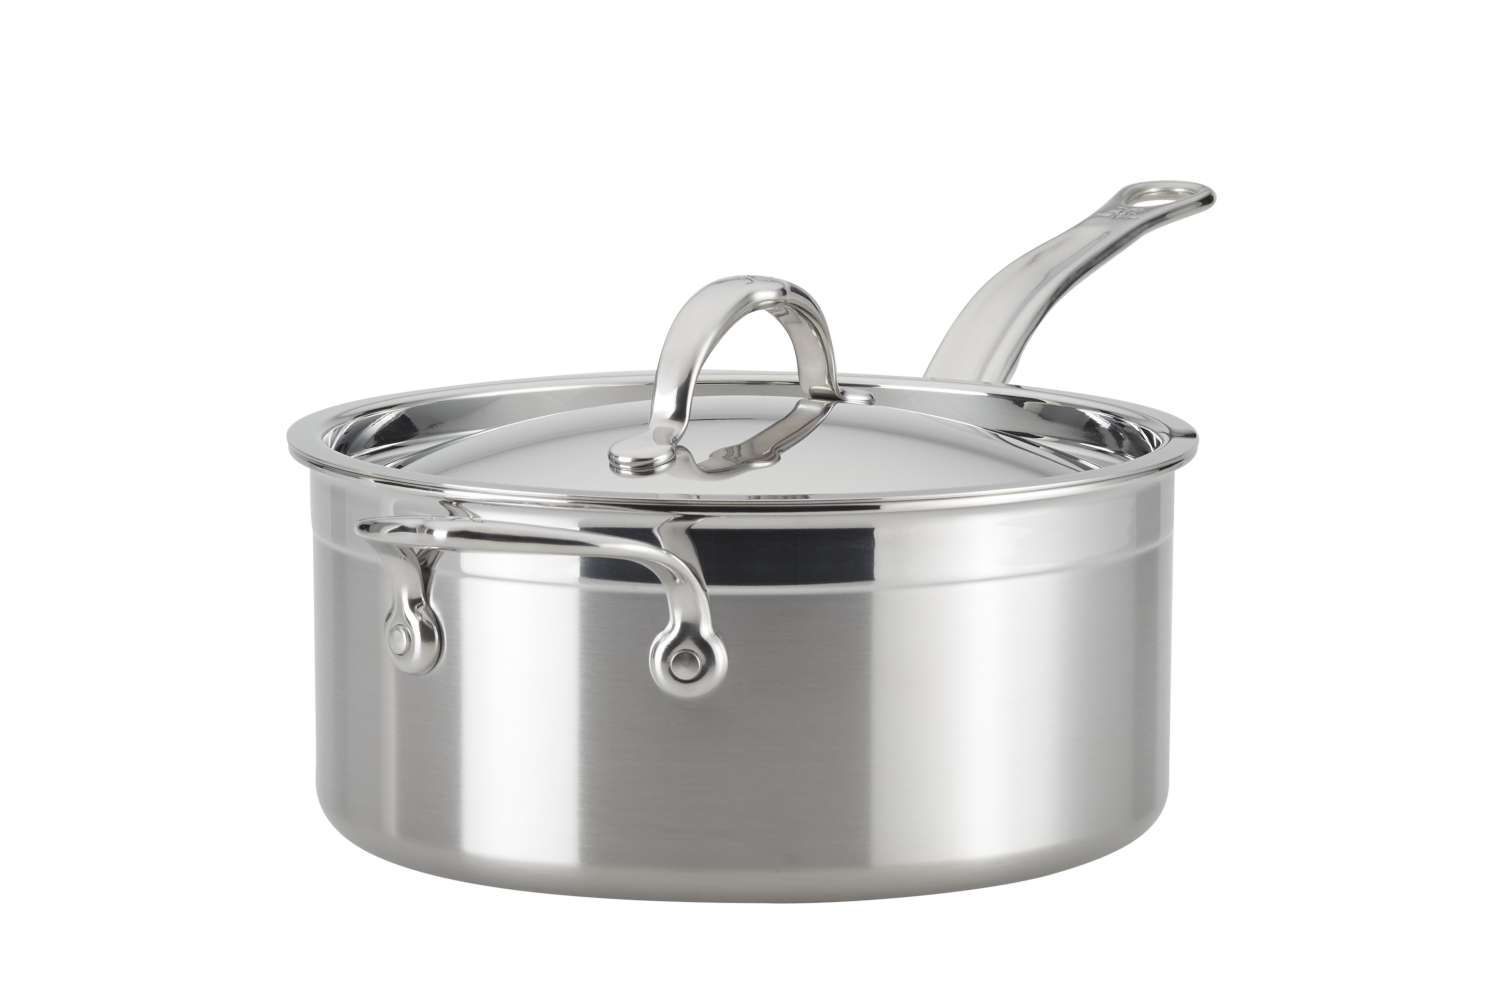 Hestan ProBond Forged Stainless Steel 4 qt. Sauce Pan w/Lid & Helper Handle